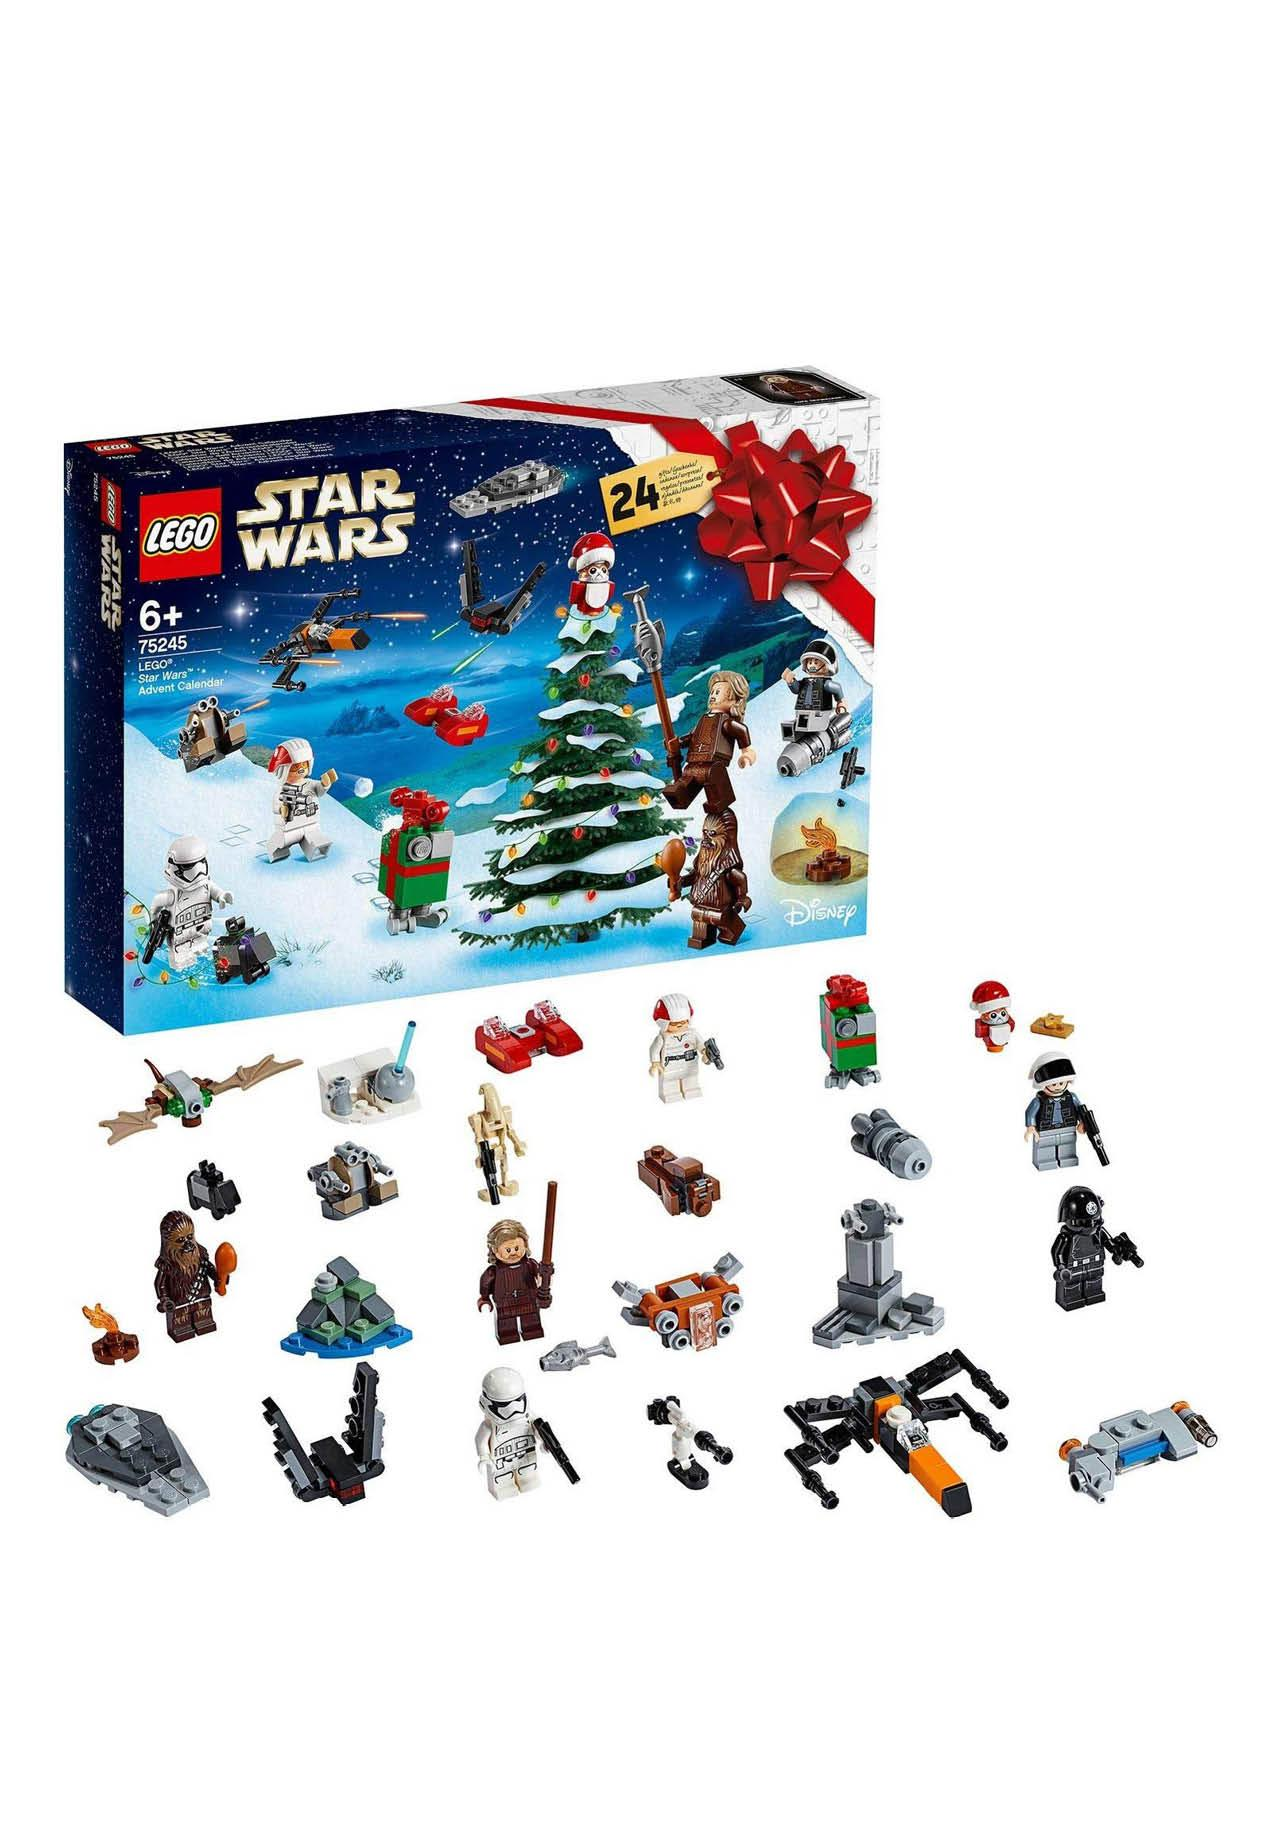 Calendario de Adviento de LEGO Star Wars